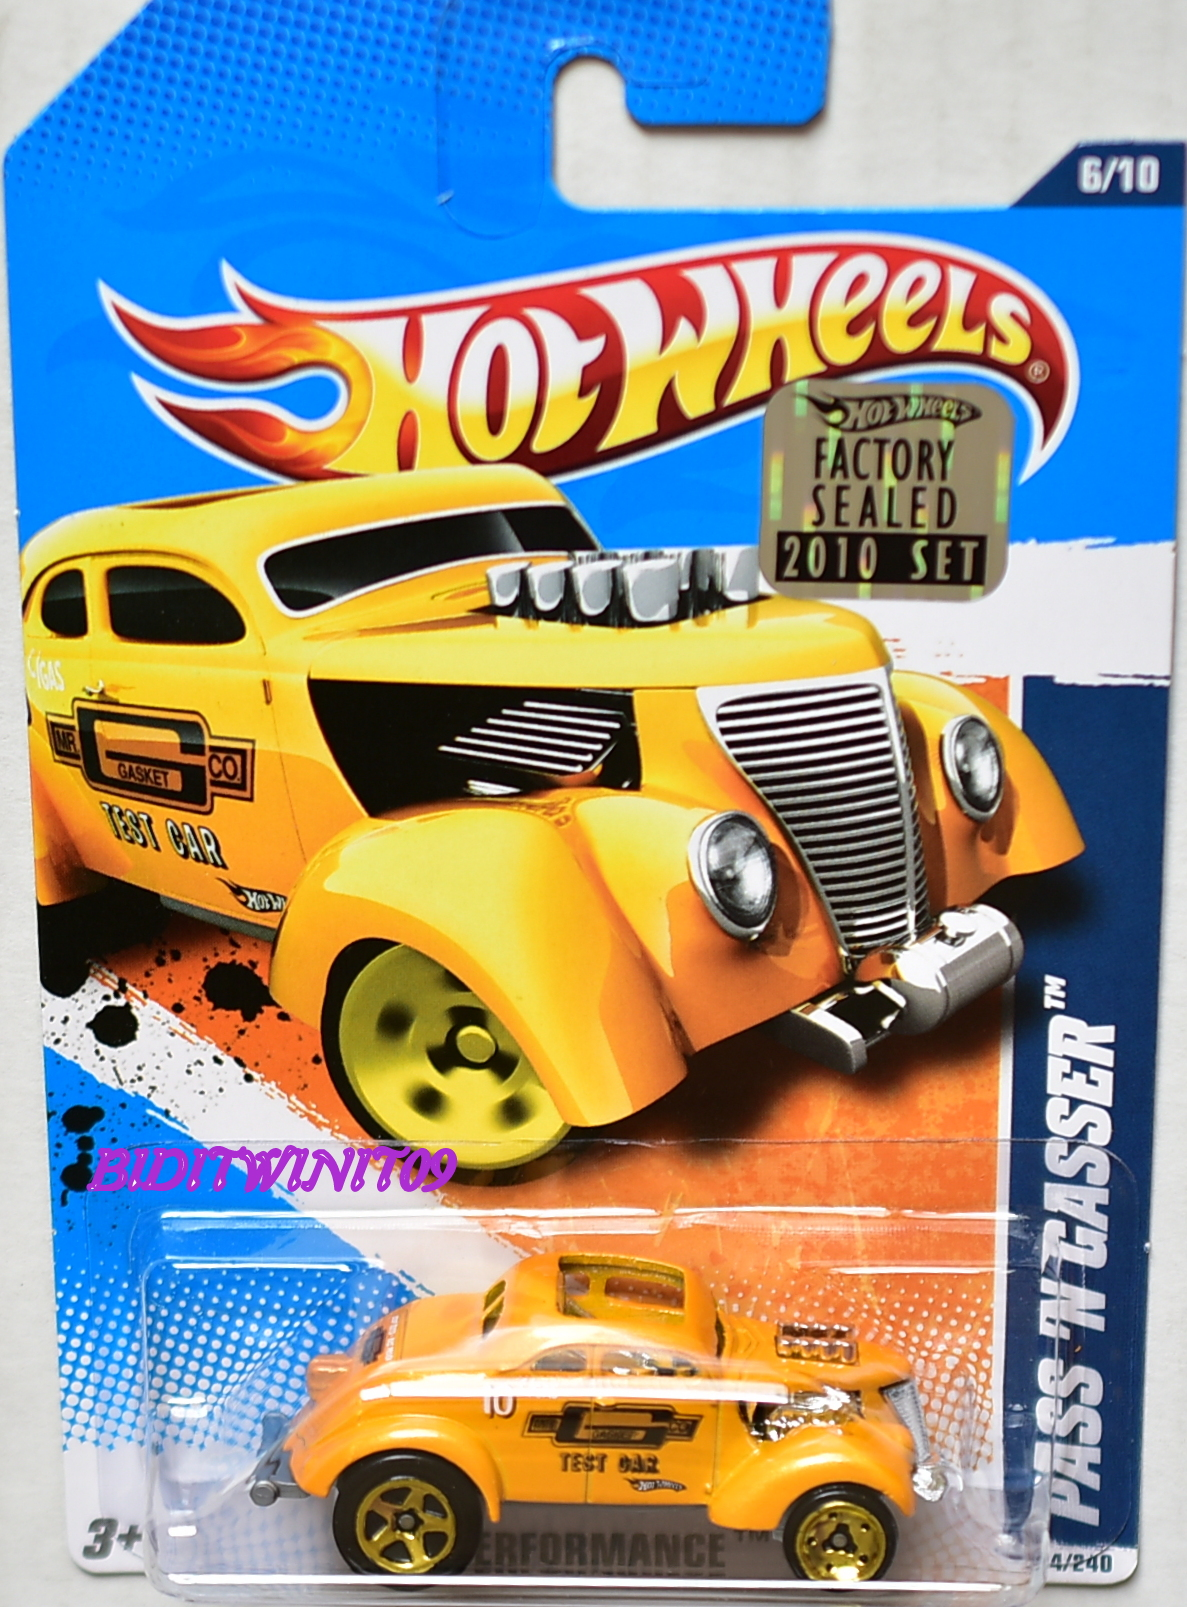 HOT WHEELS 2010 HW PERFORMANCE PASS'N GASSER #06/10 YELLOW FACTORY SEALED E+